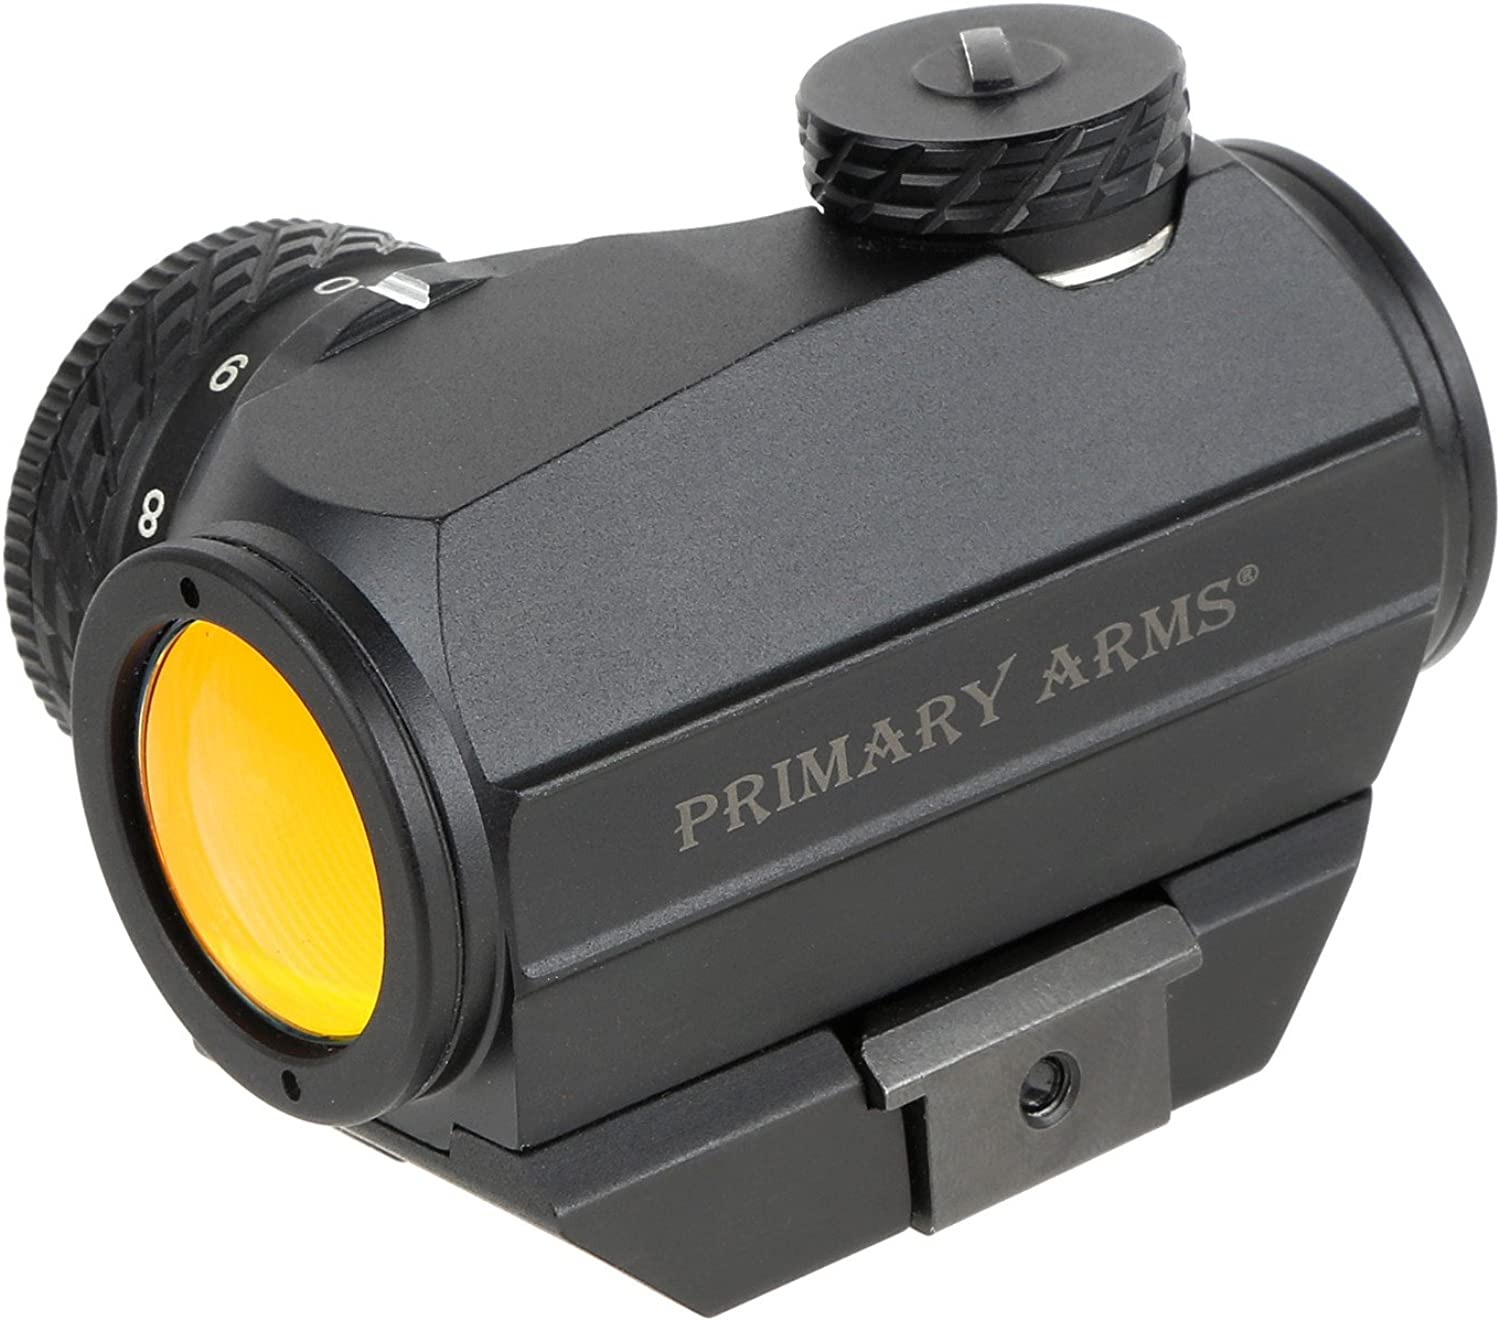 Primary Arms Advanced Micro Red Dot Sight (MDRBAD)  2 MOA Dot, redary Knob, Removable Picatinny Mount